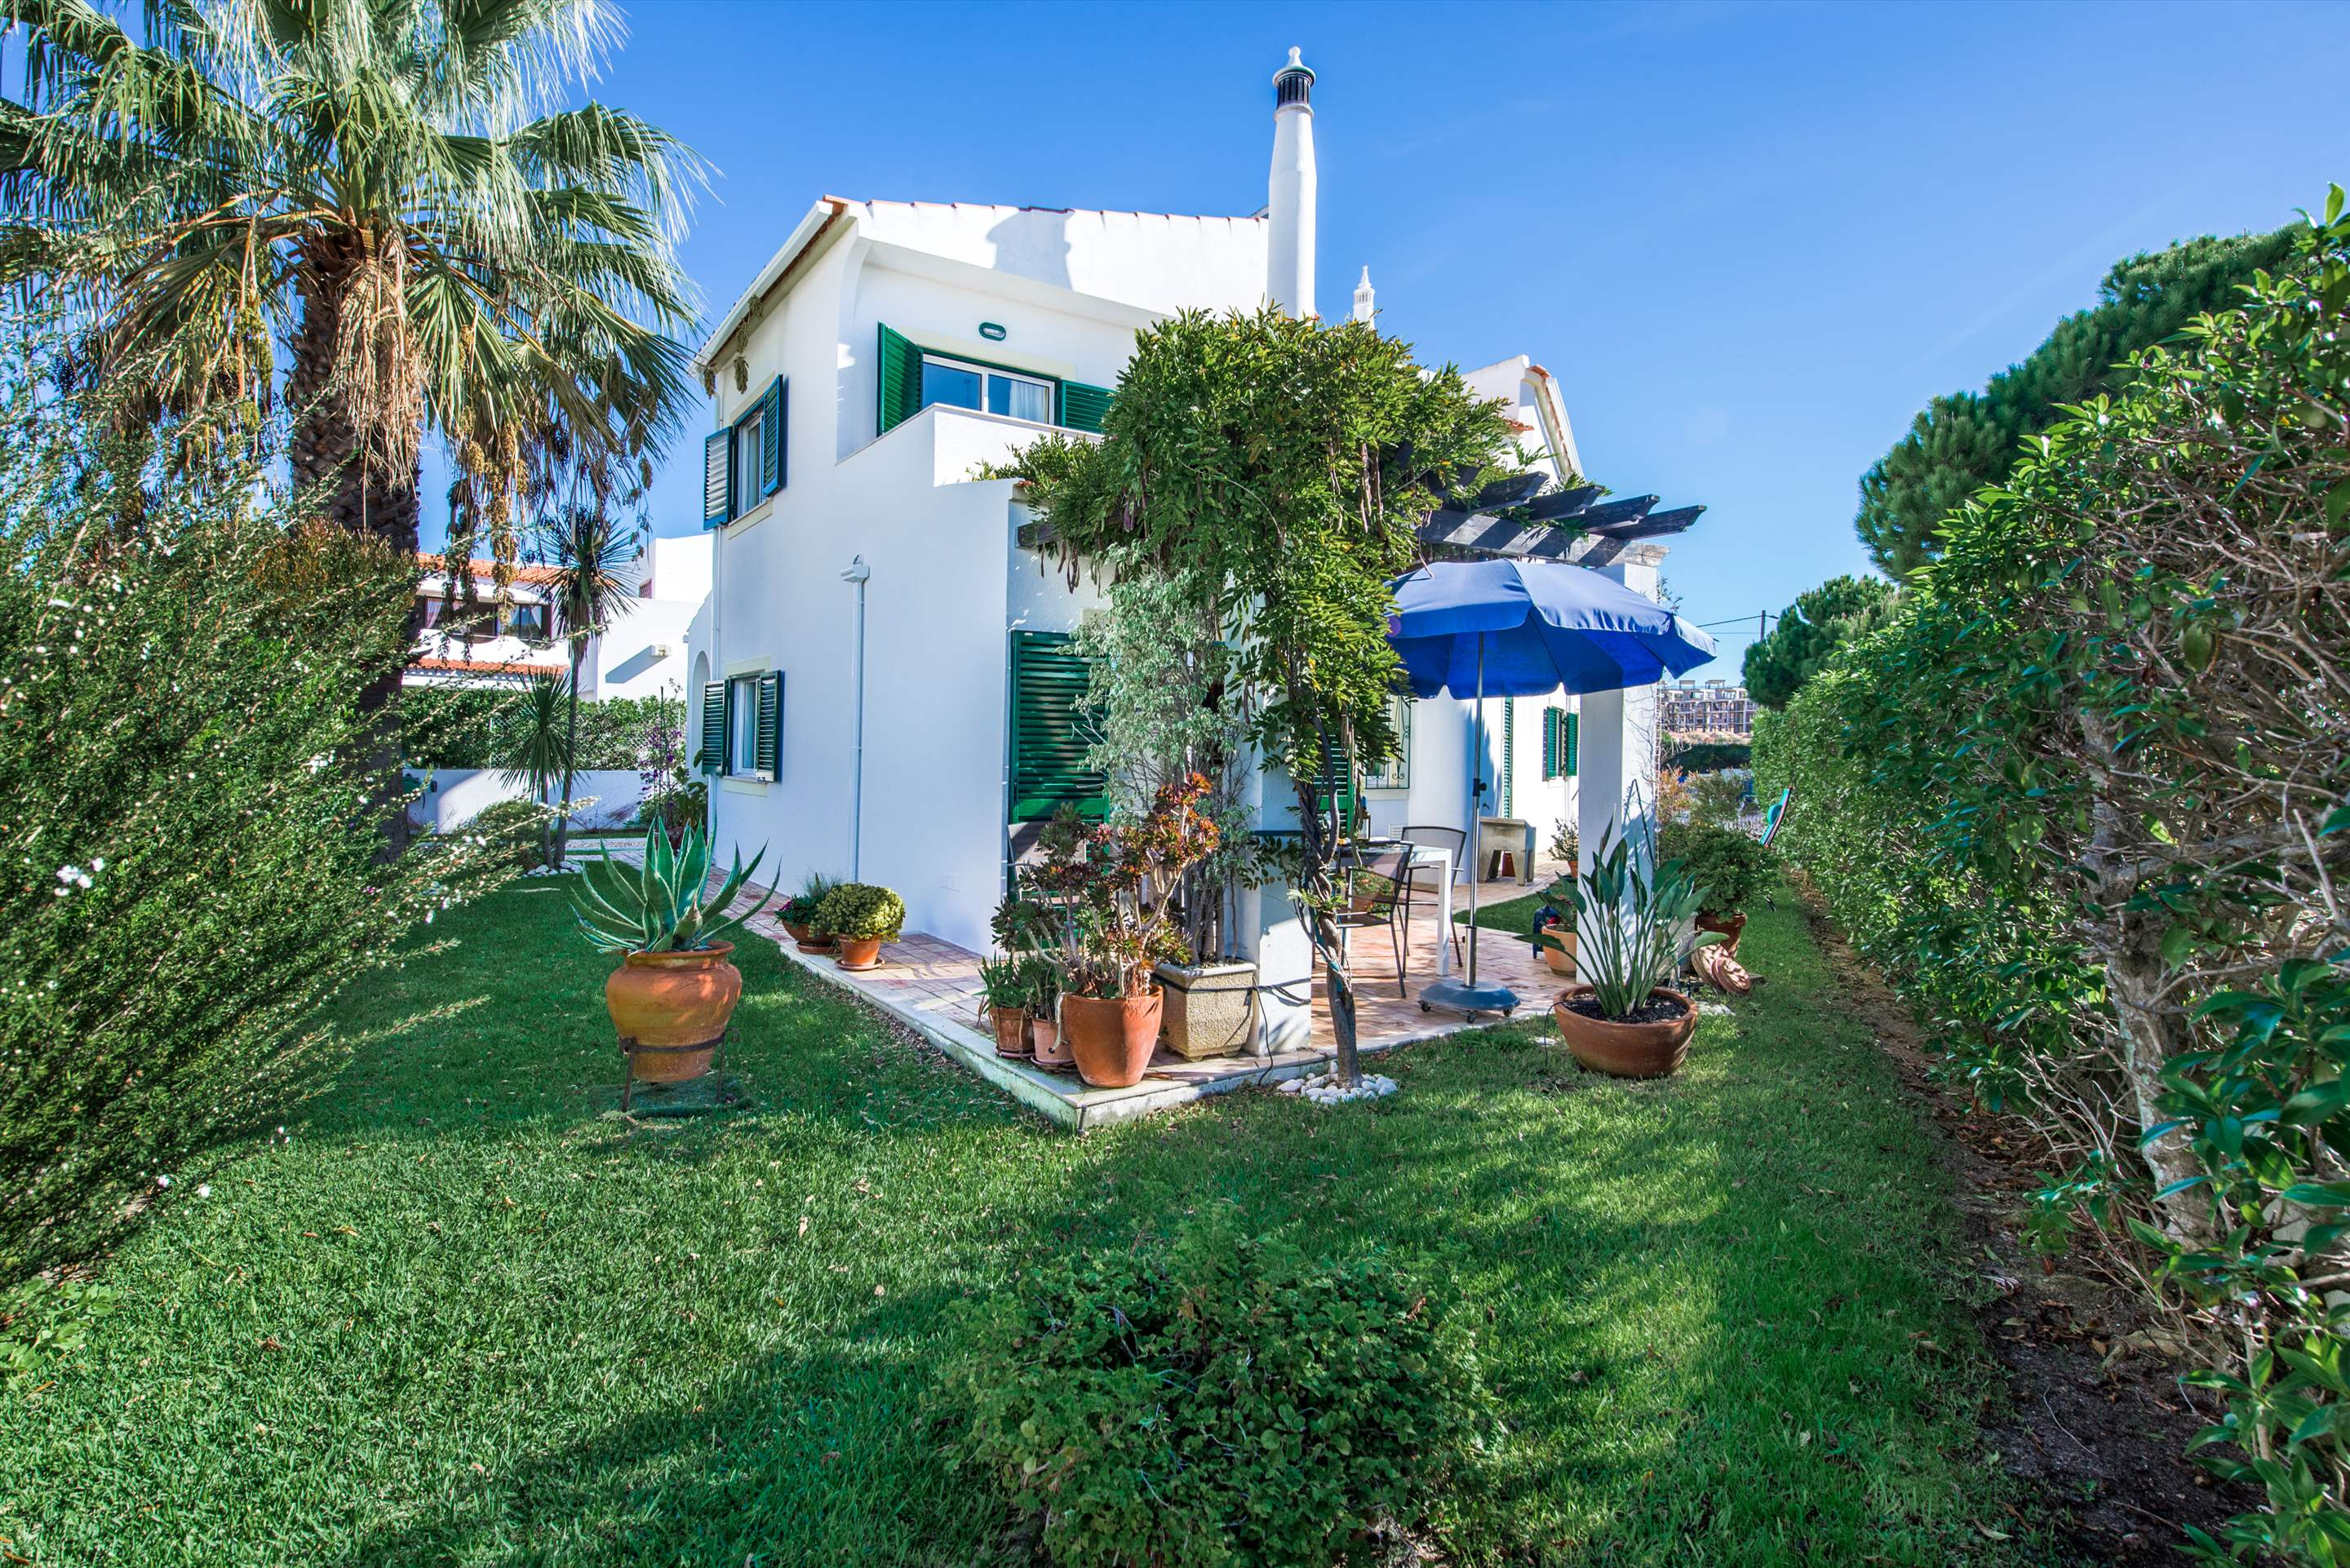 Julieta do Mar, Up to 6 Persons, 3 bedroom villa in Gale, Vale da Parra and Guia, Algarve Photo #26